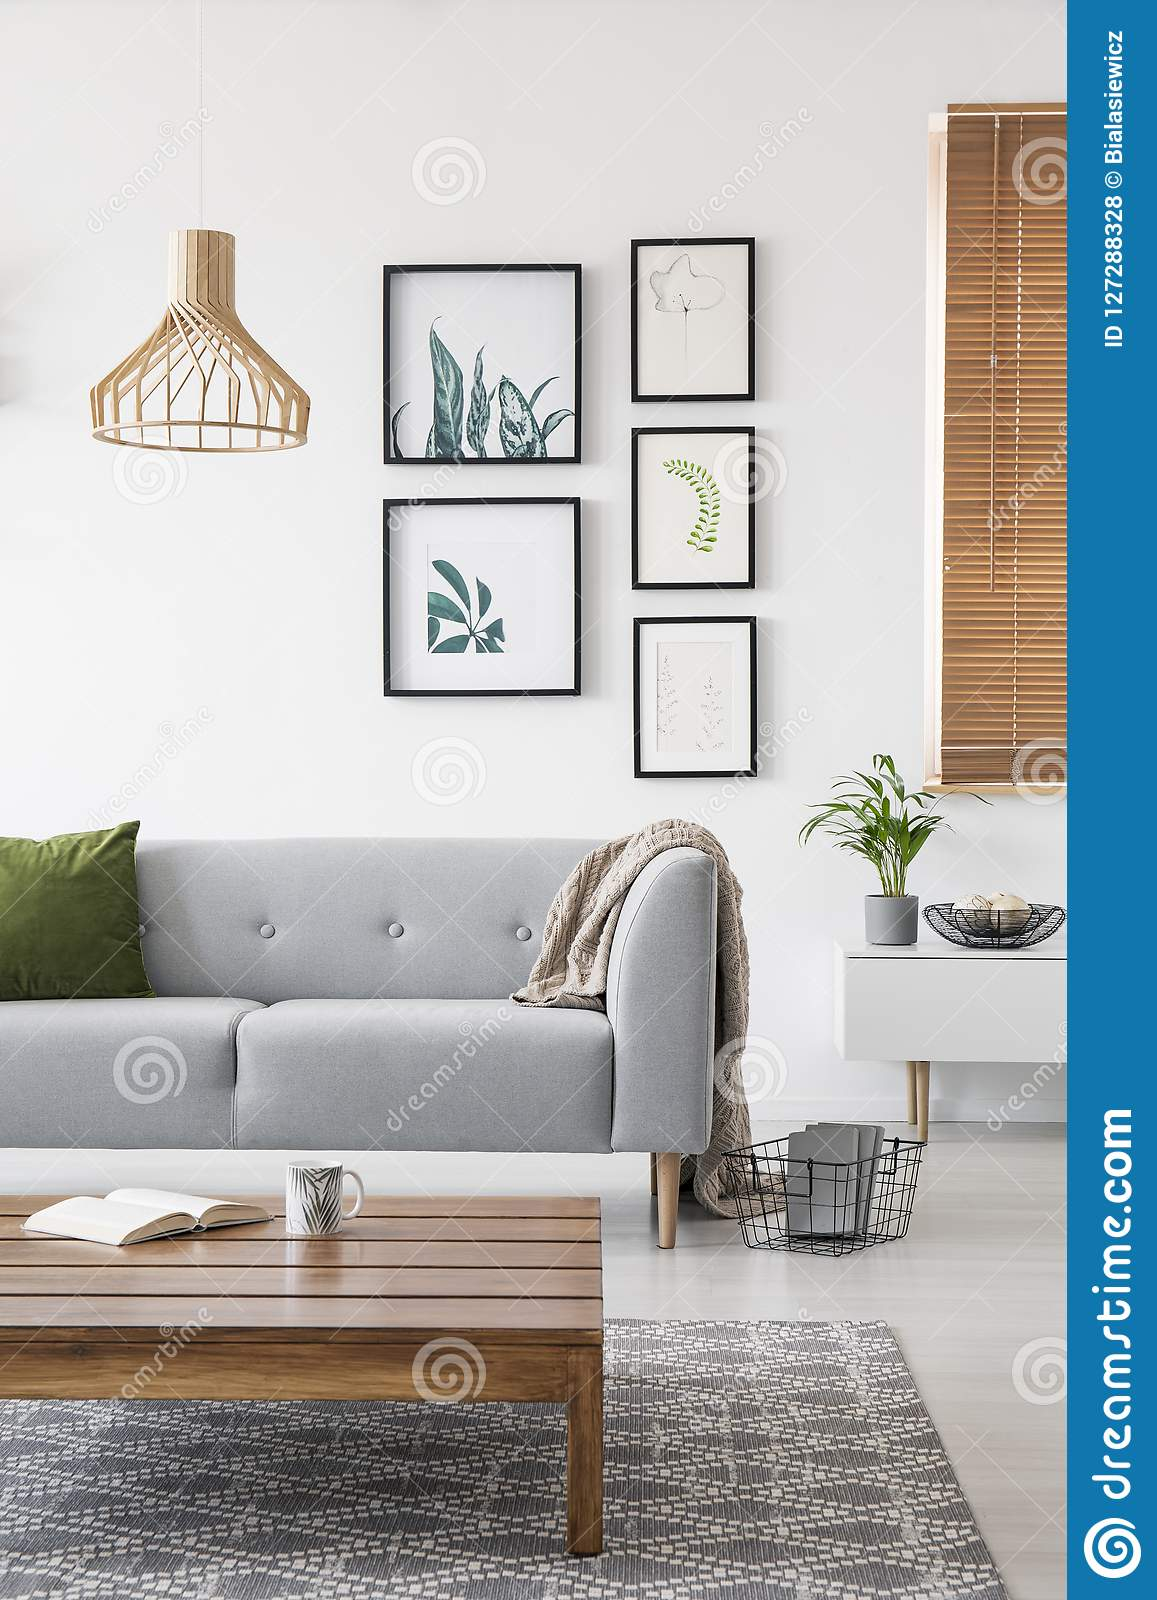 posters on a wall in a living room interior with a sofa